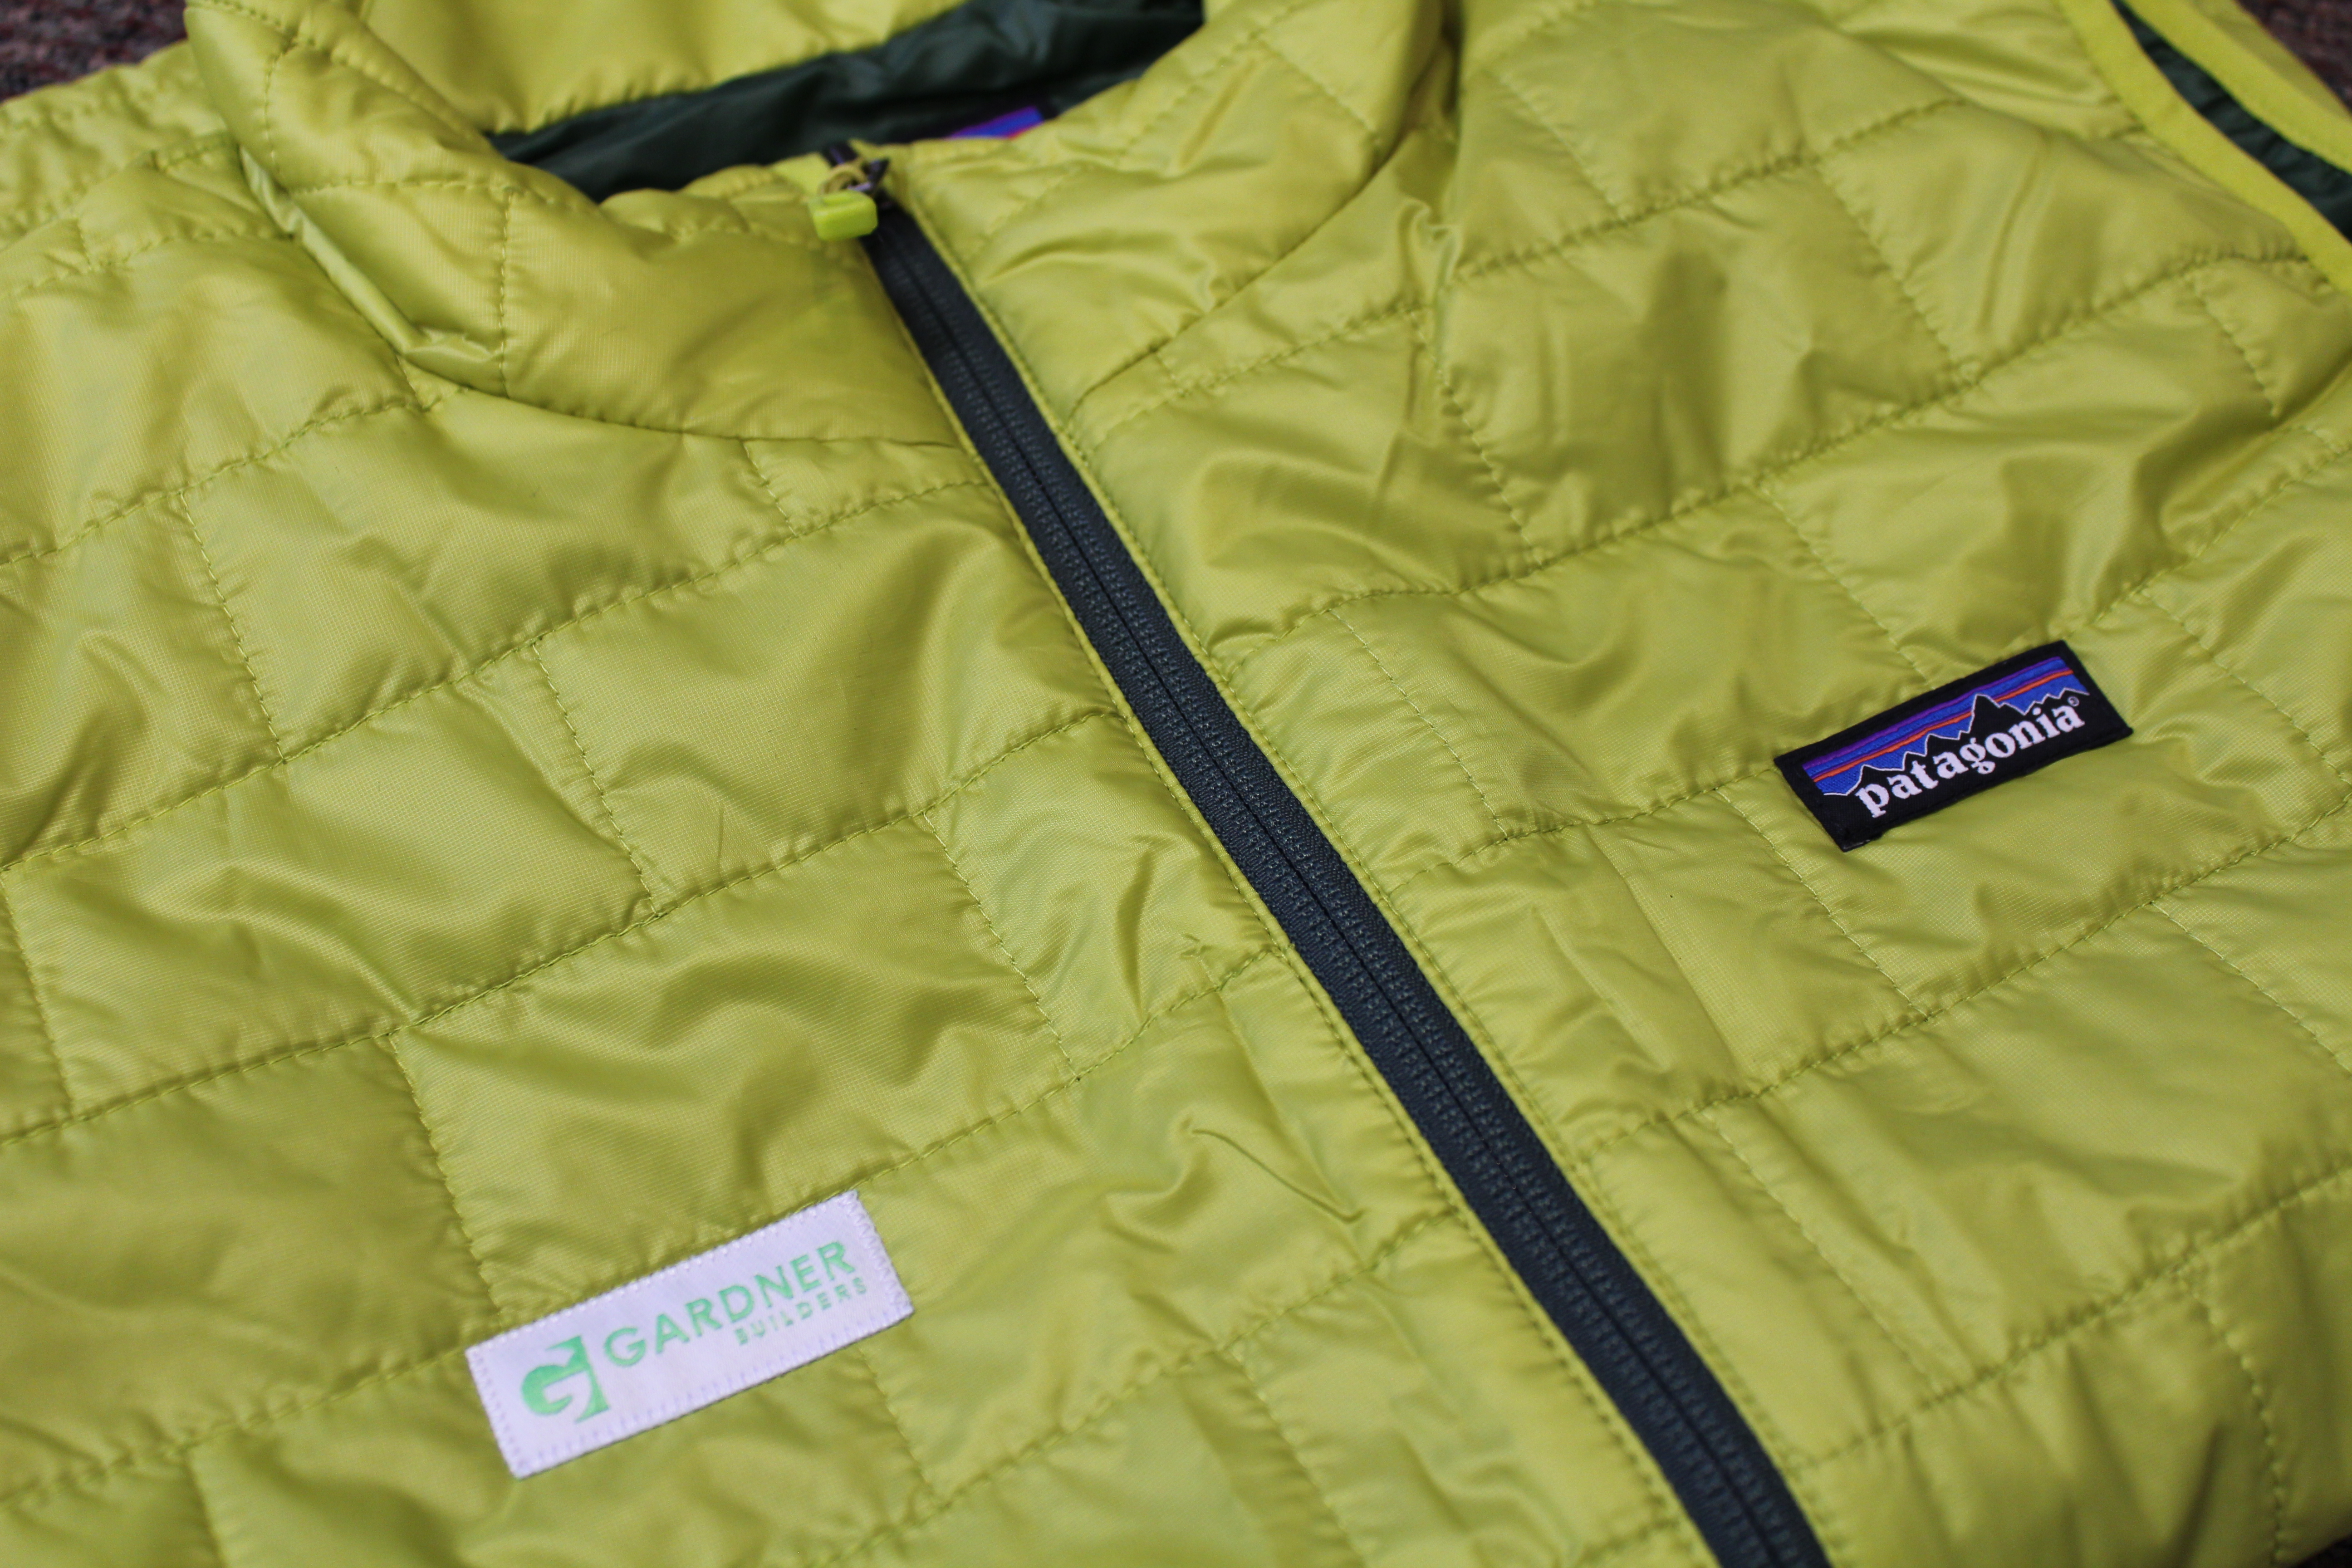 Branded Outerwear